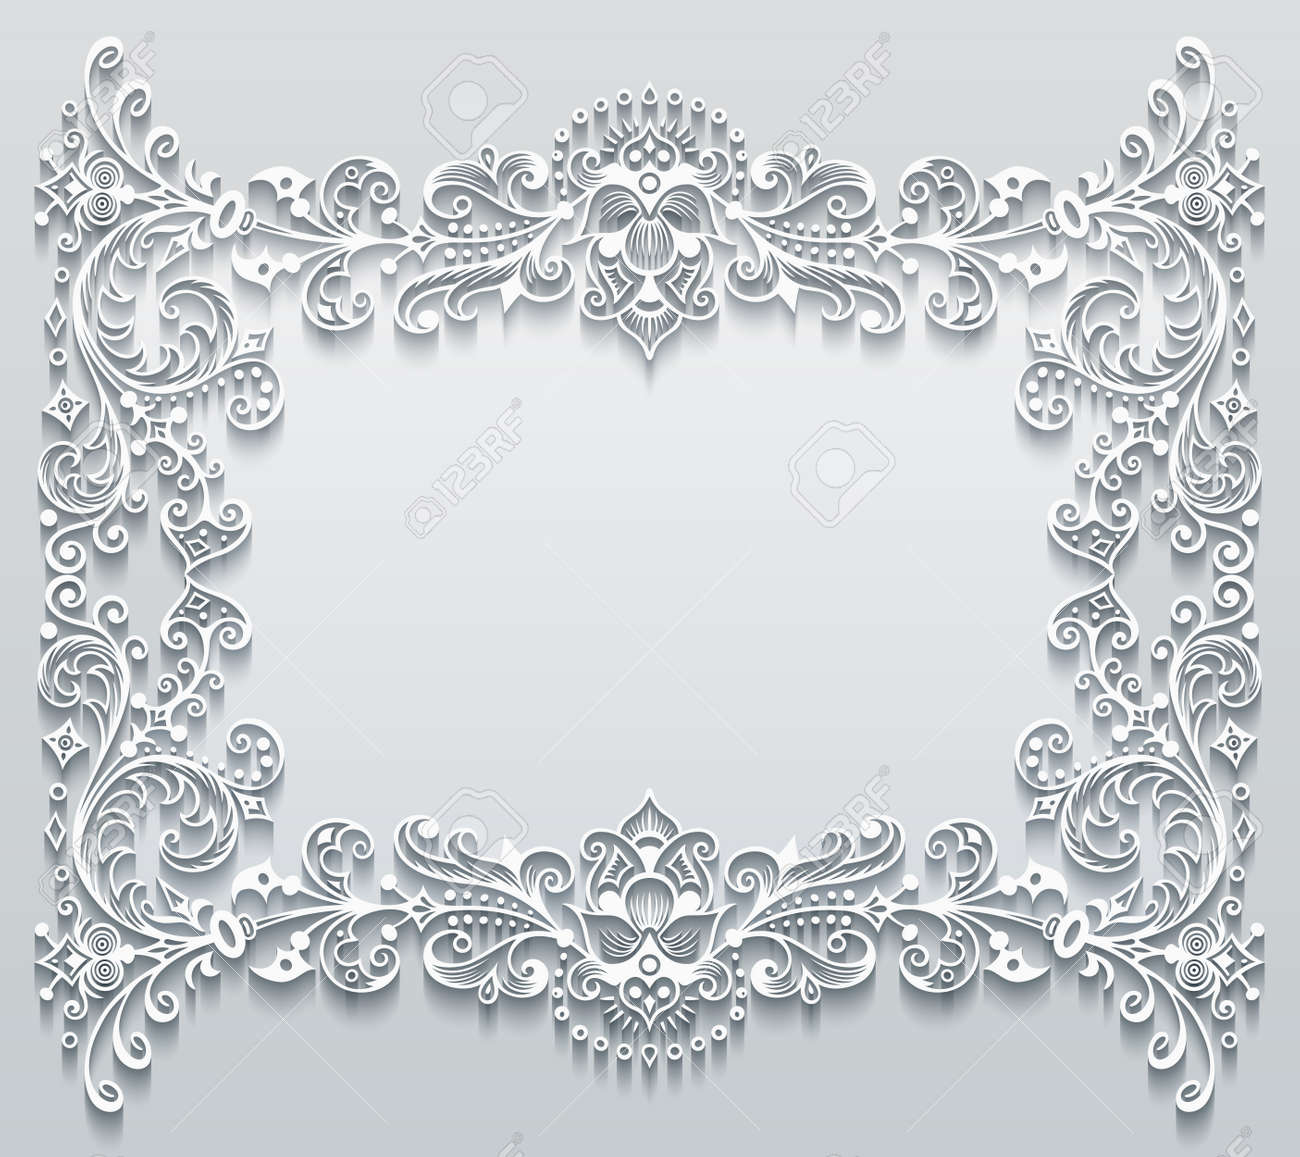 Vector abstract ornamental nature vintage frame. - 151972934